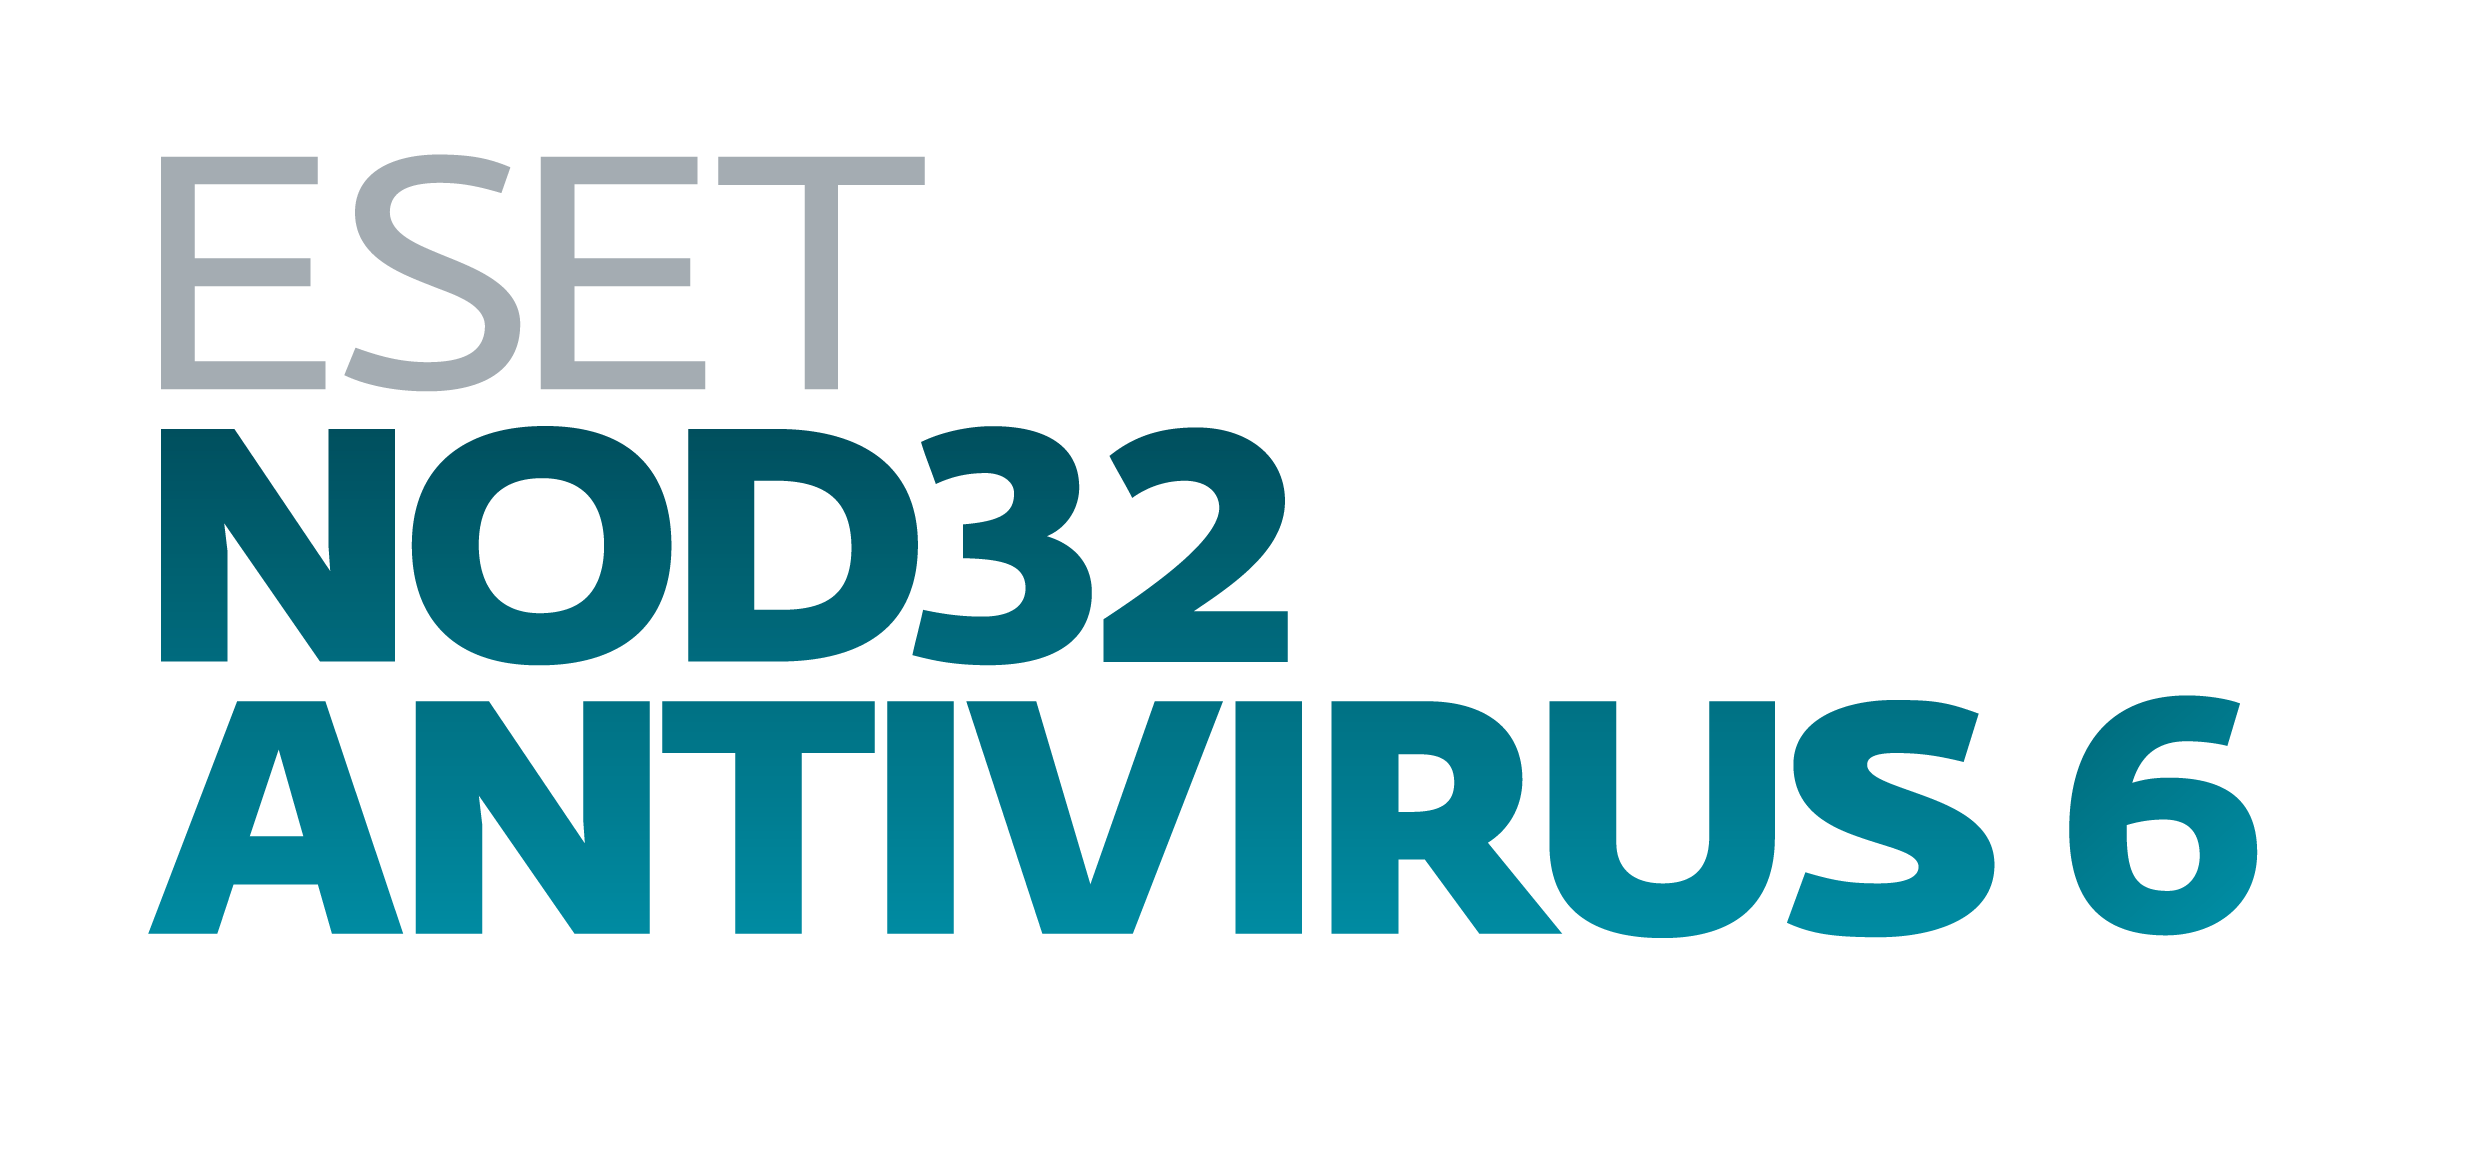 Eset NOD32 Antivirus Logo Wallpaper